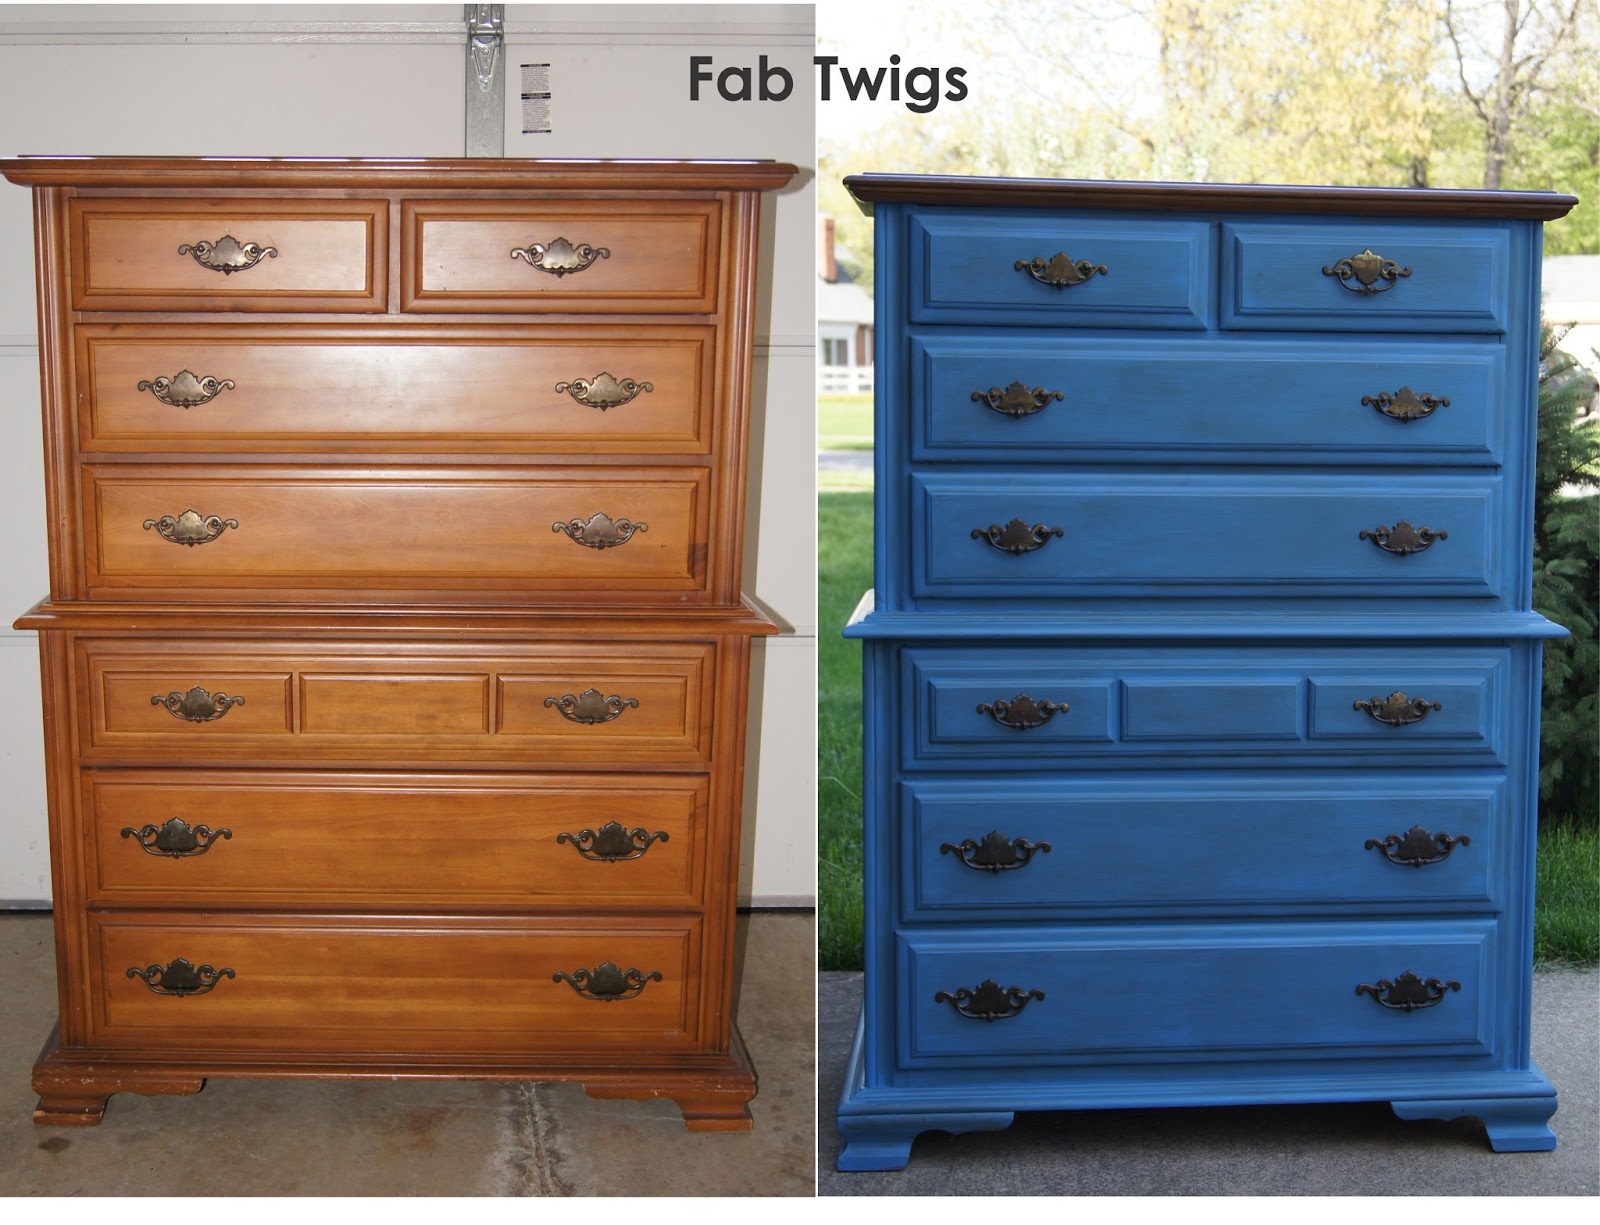 Chalk Paint Chairs Fabtwigs Dresser Transformation Painting Furniture With